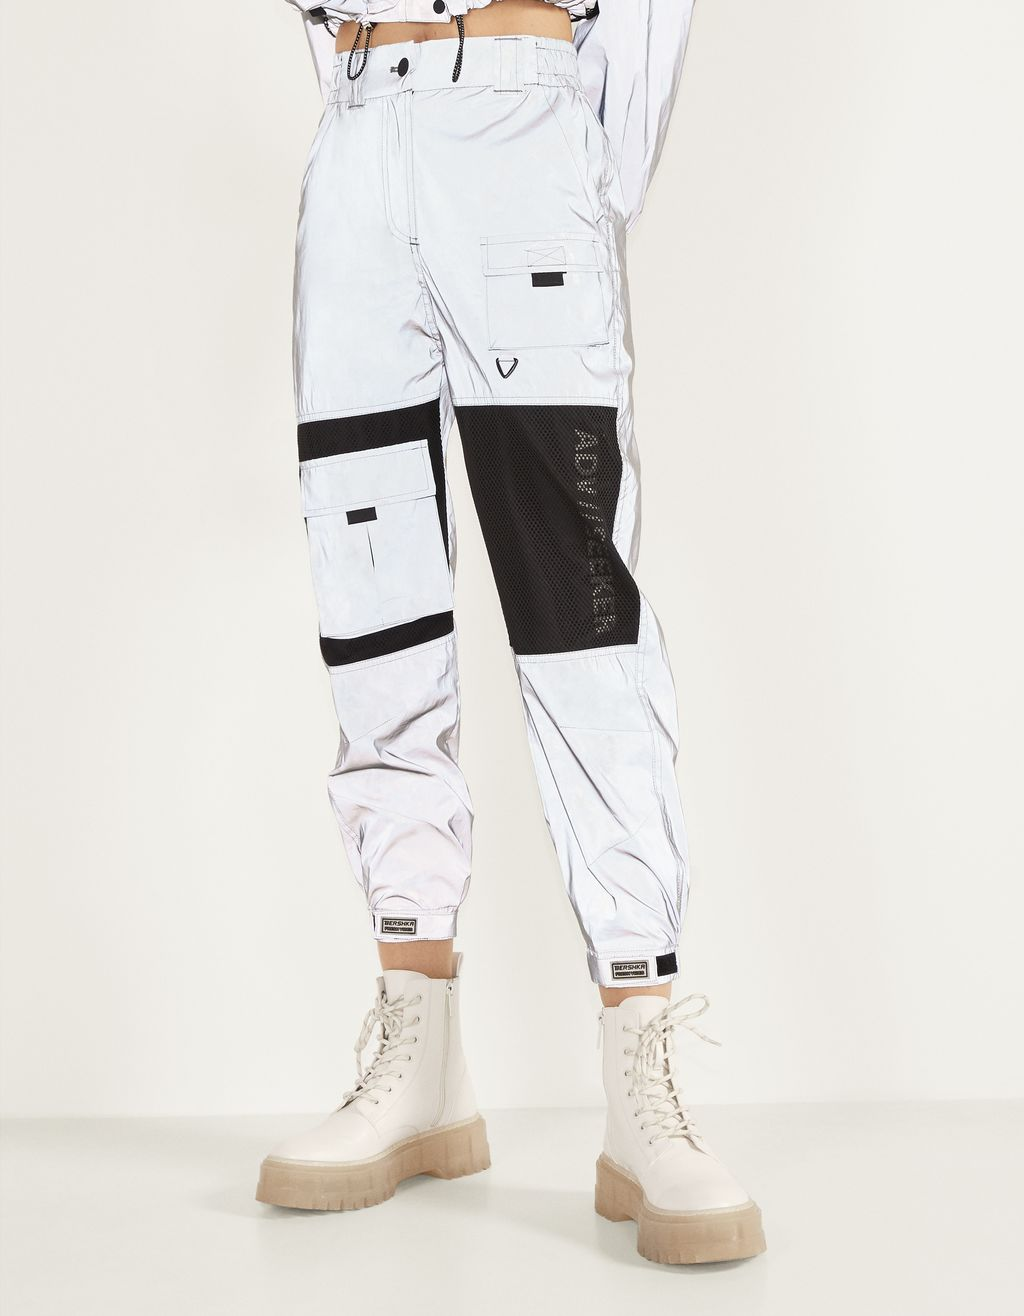 Cargo joggers with reflective detail.